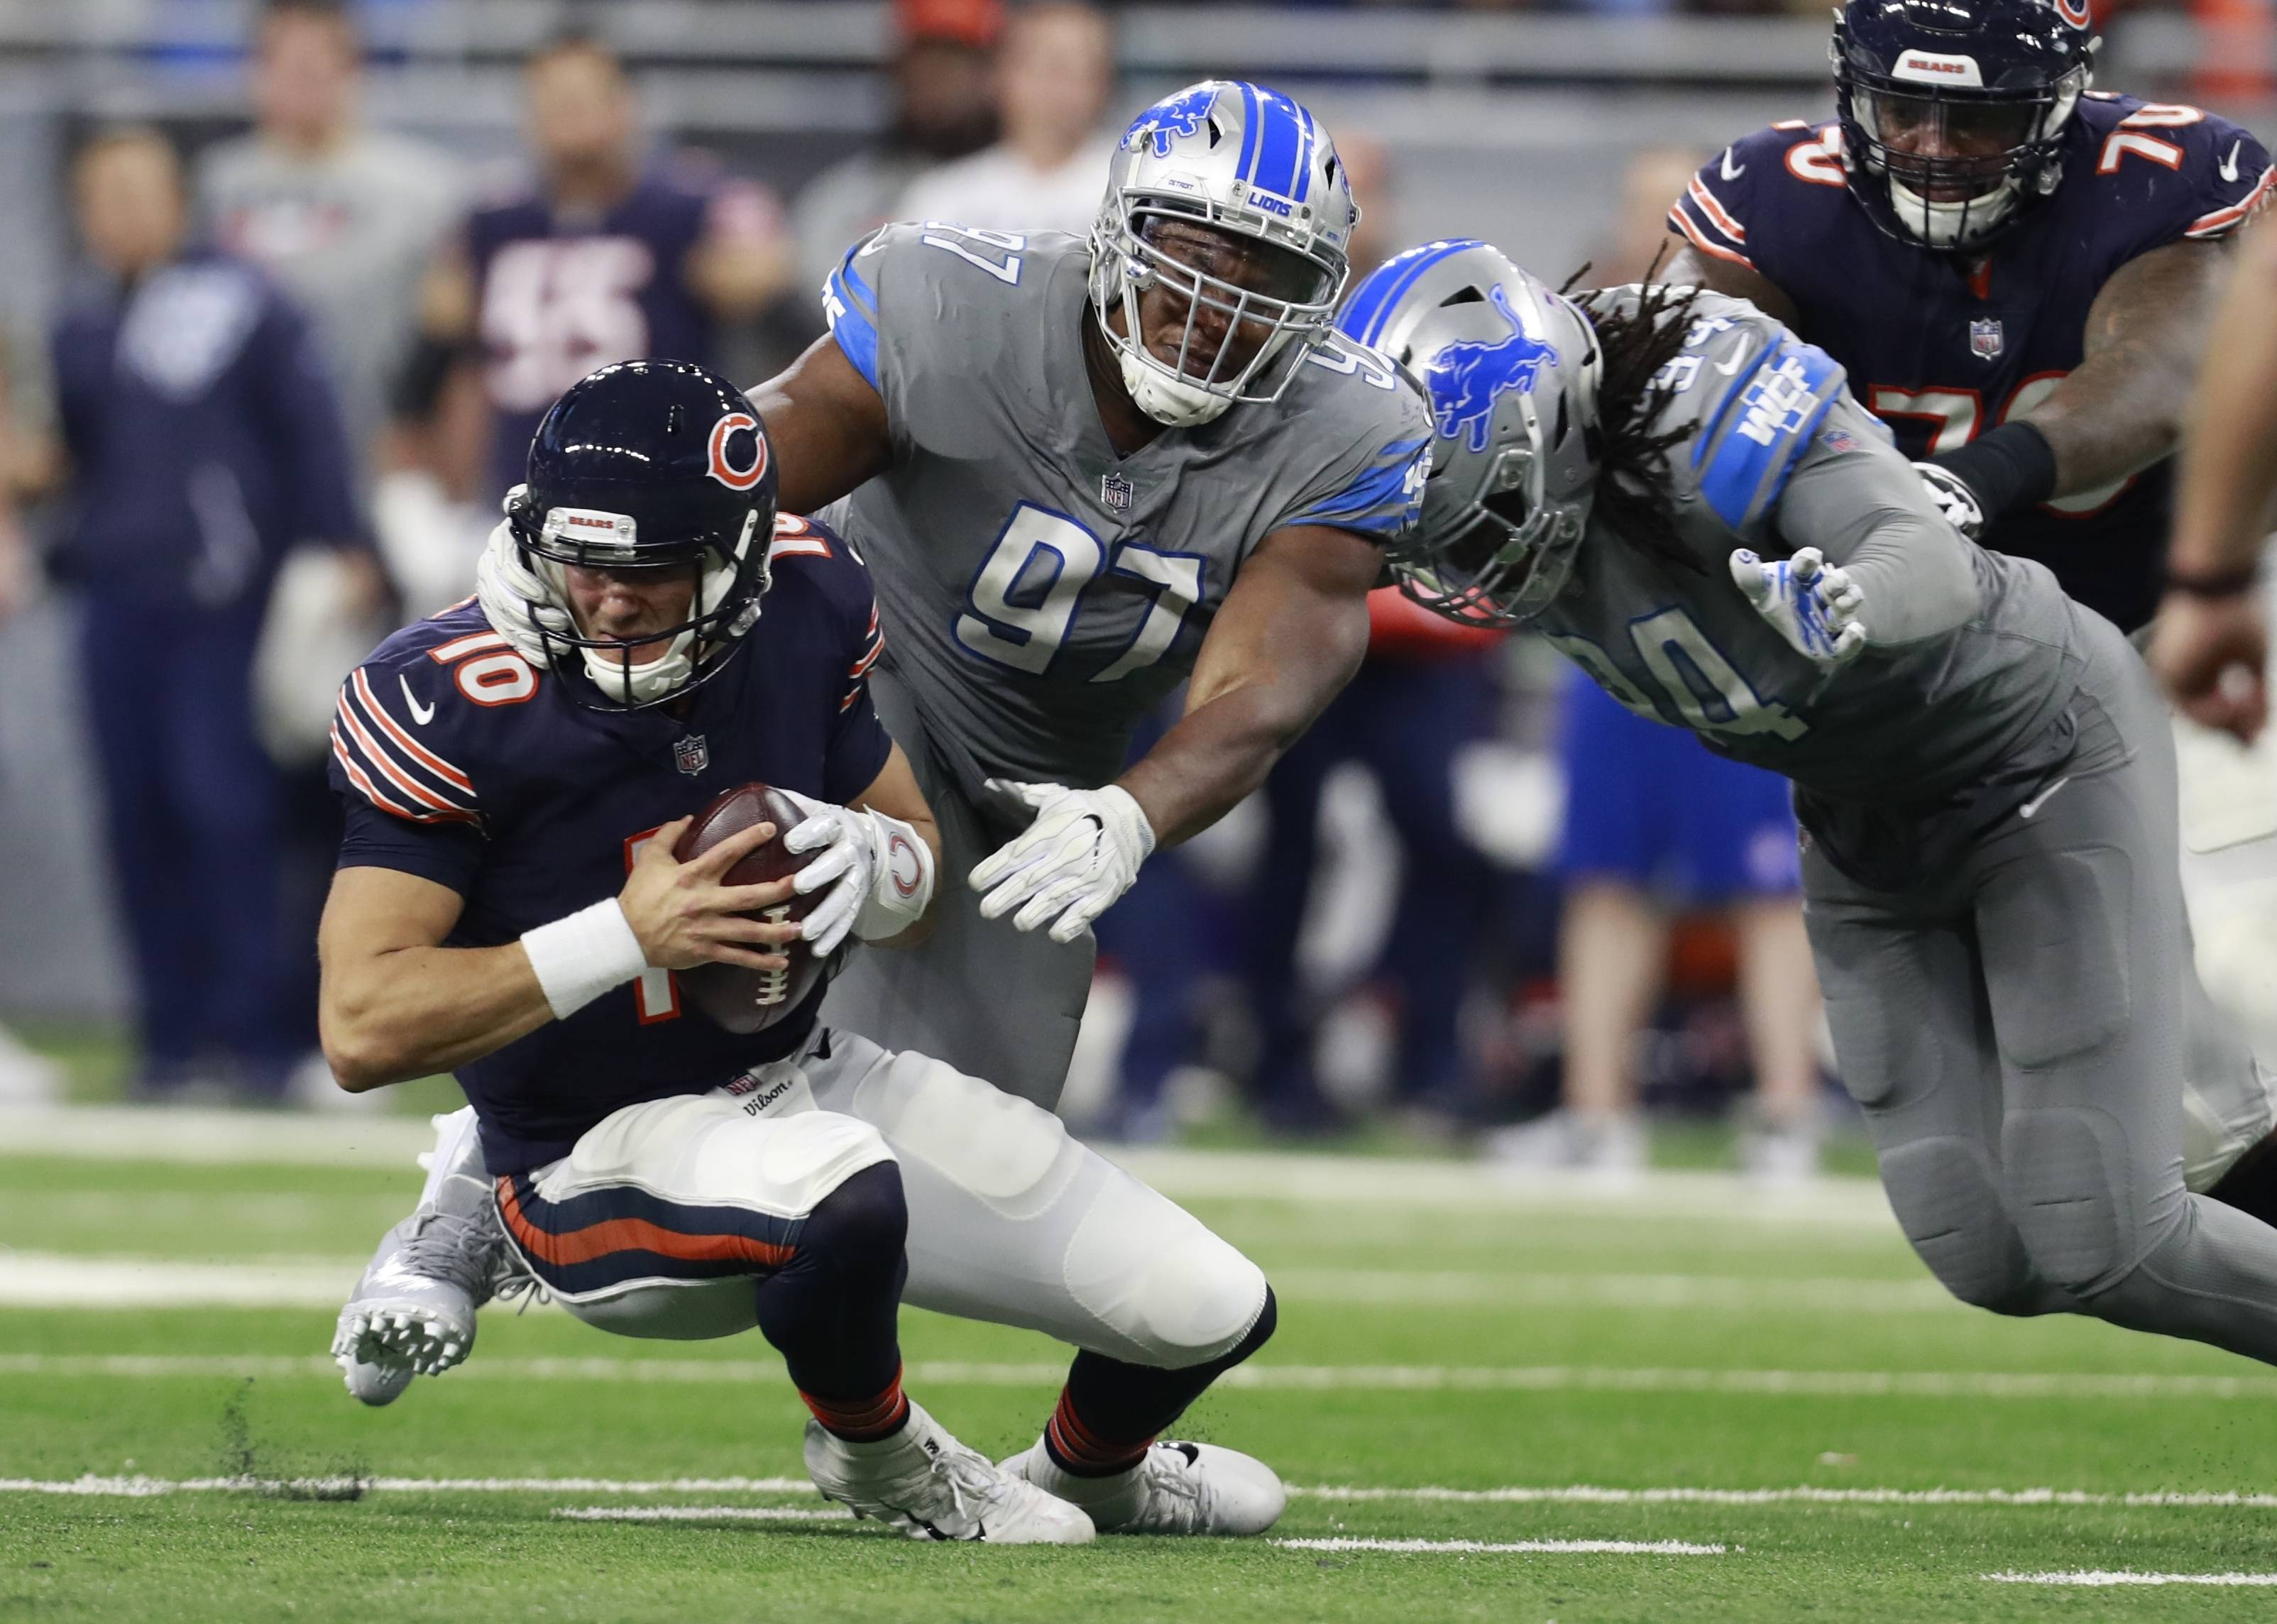 The Bears' loss to the Lions did not represent a step forward in rookie quarterback Mitch Trubisky's development. After throwing just 4 interceptions in his first nine starts, the second overall pick in the draft was picked off twice by the Lions, who improved to 8-6, while dropping the Bears to 4-10.